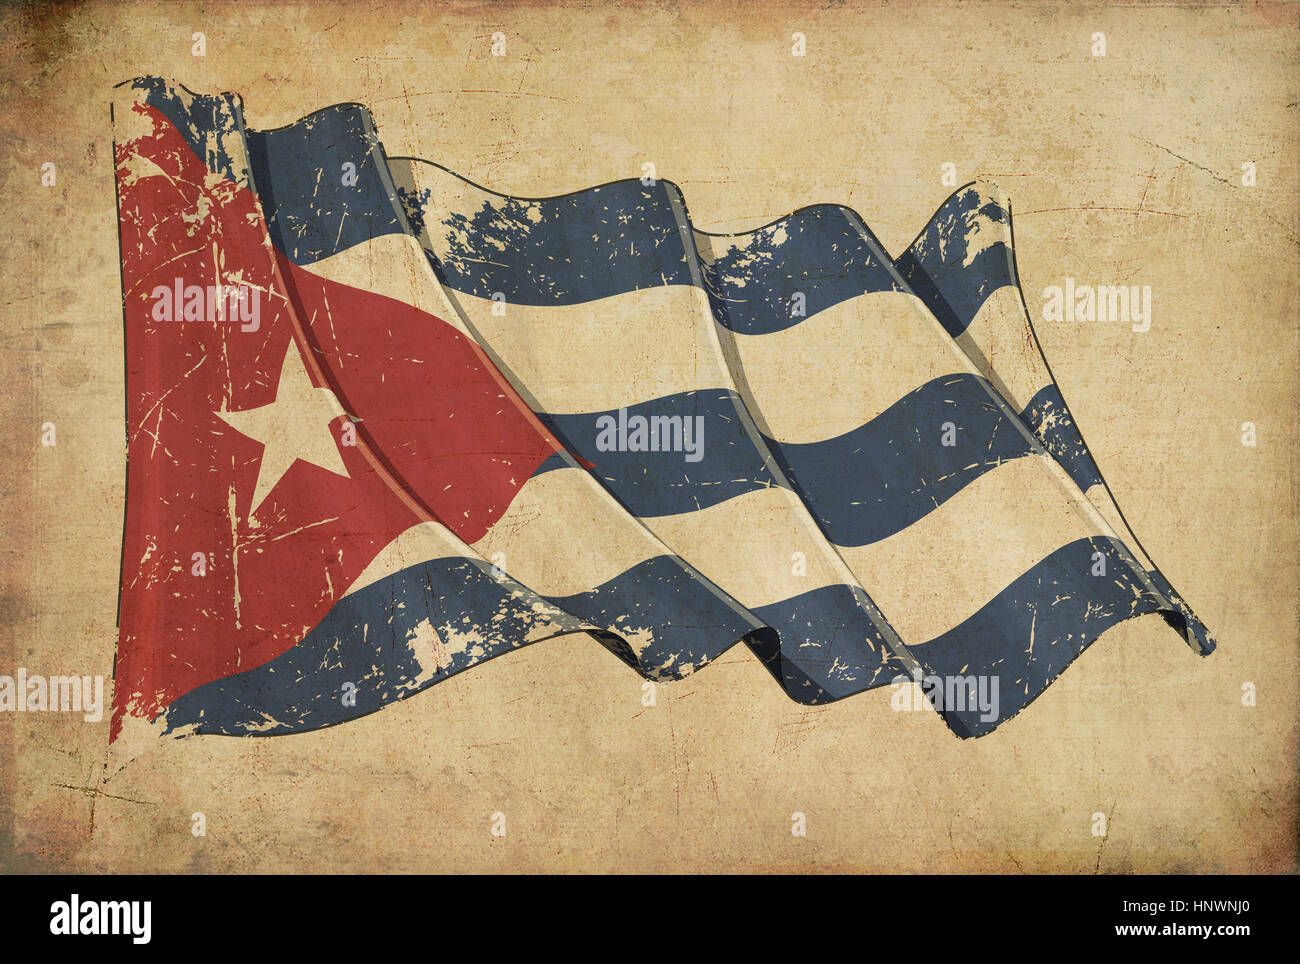 Wallpaper Depicting An Aged Paper Textured Background With A Scratched Illustration Of The Cuban Flag